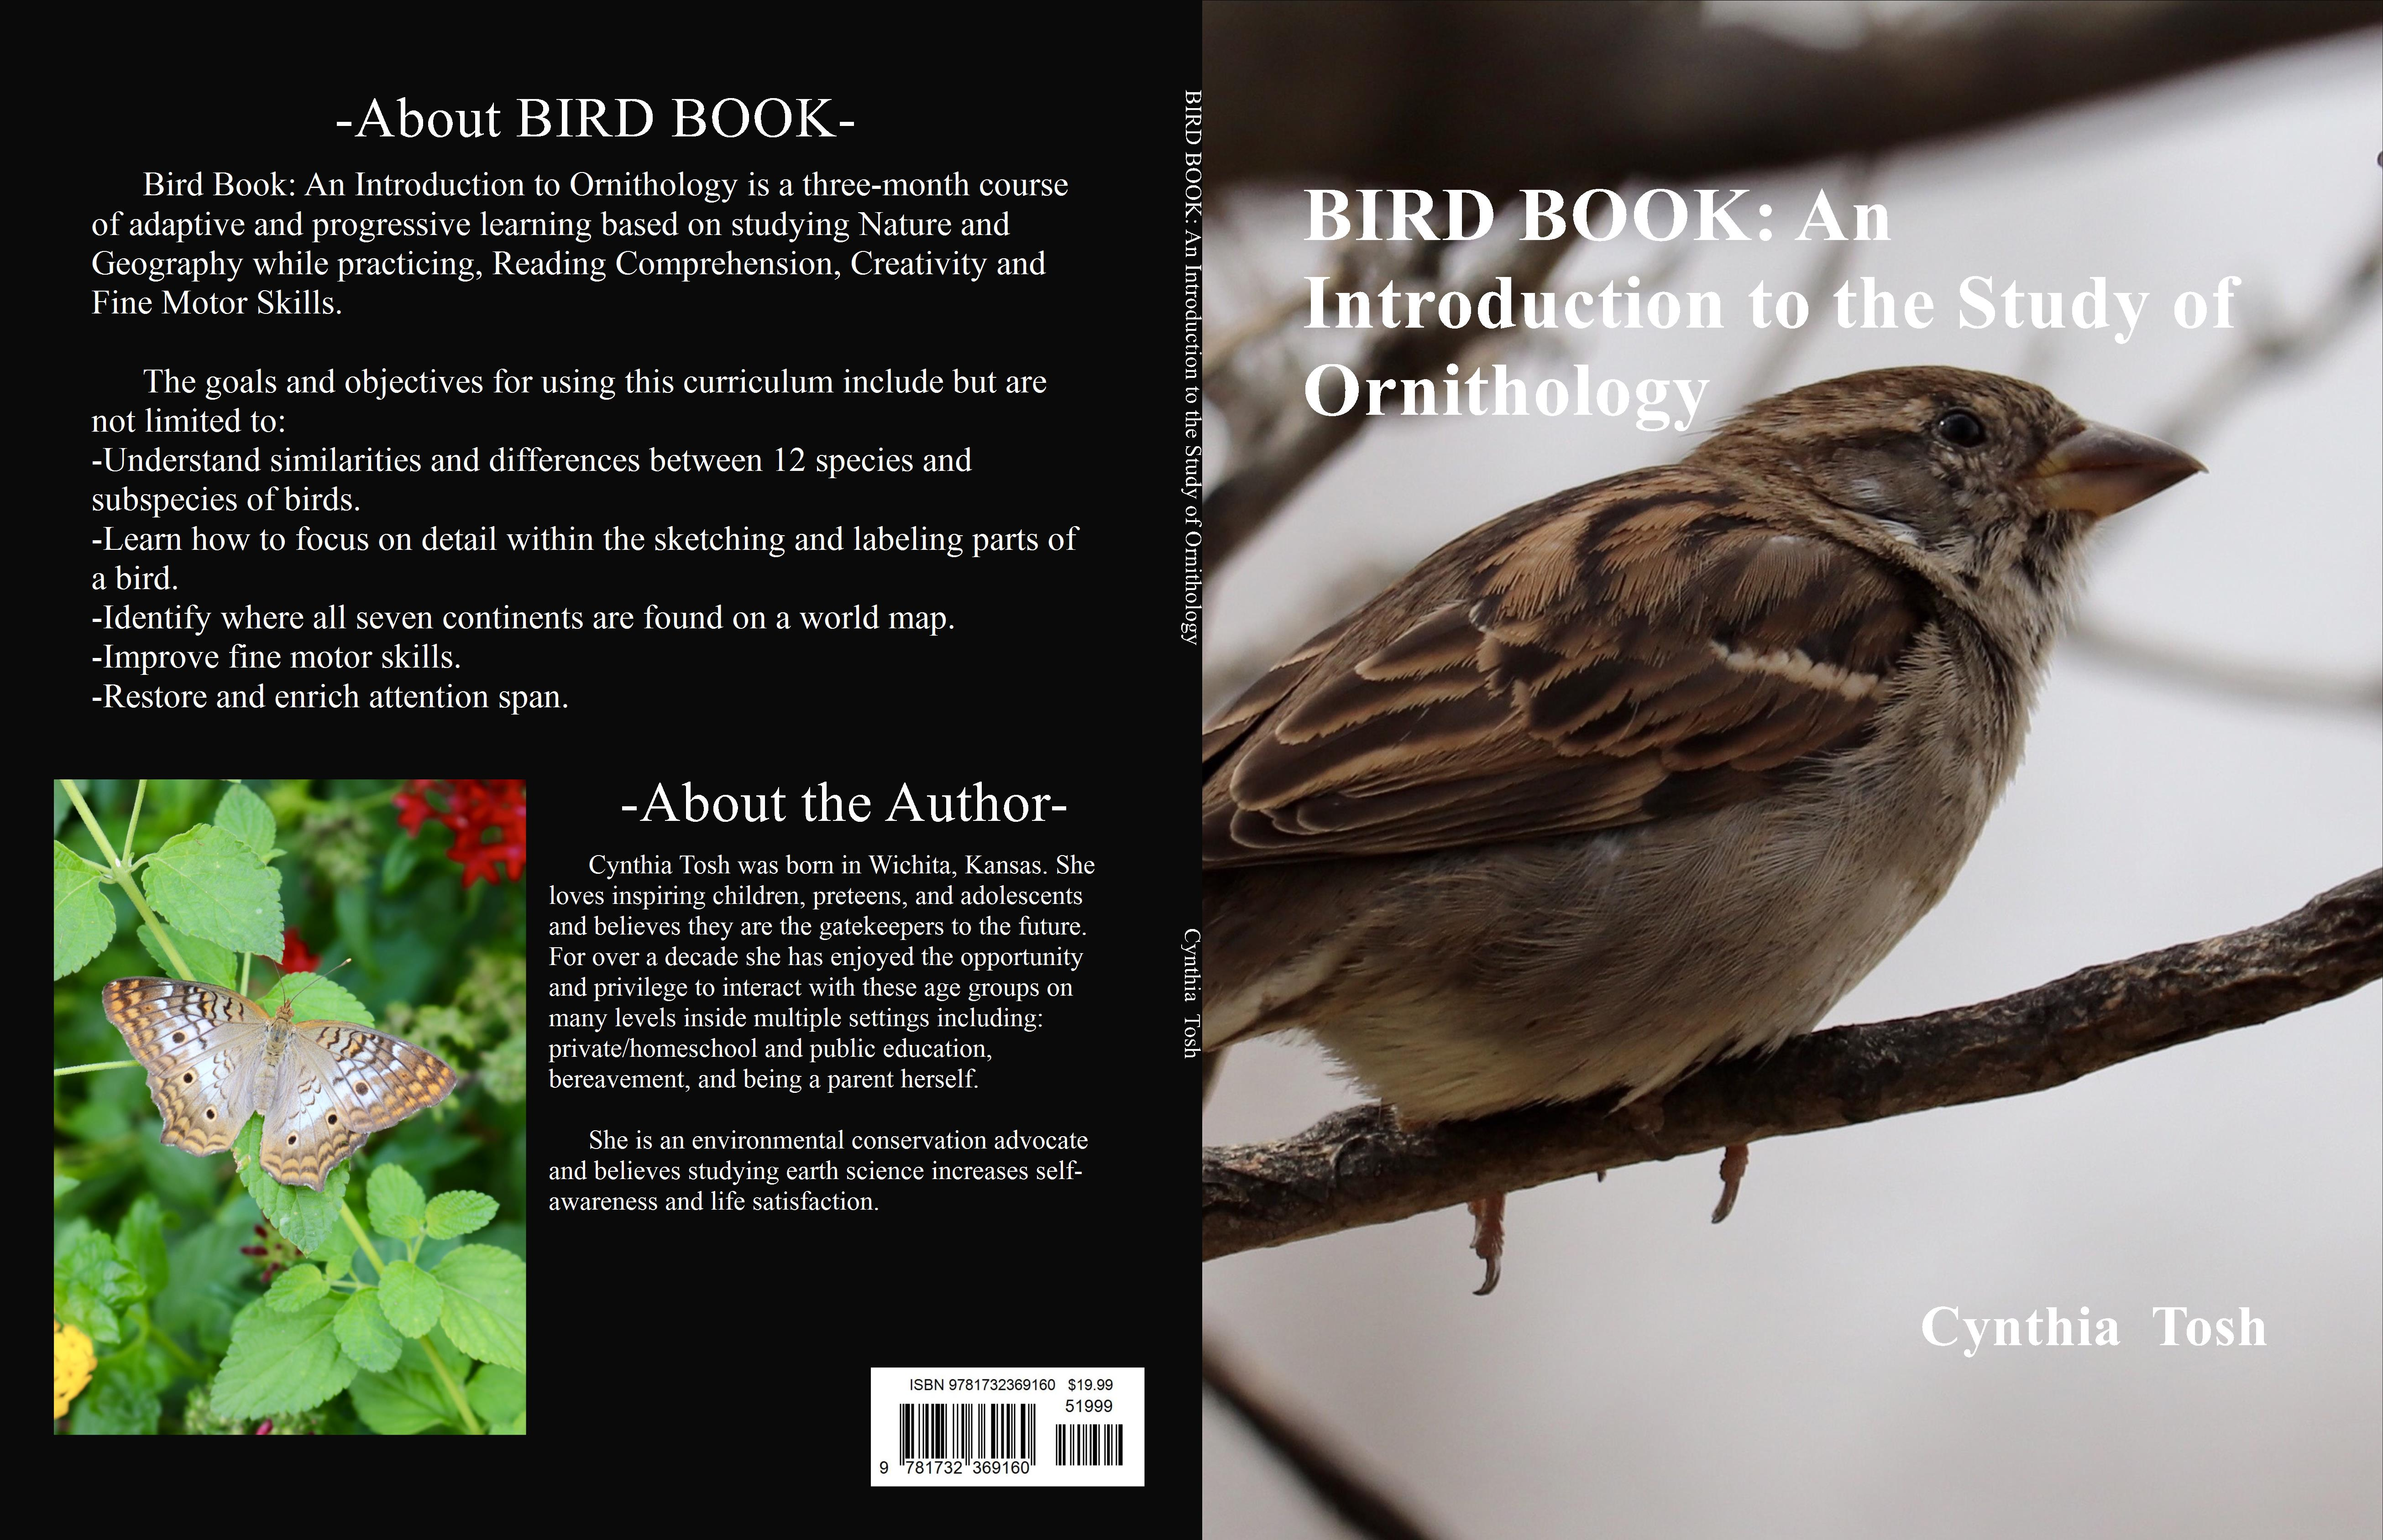 BIRD BOOK: An Introduction to the Study of Ornithology cover image